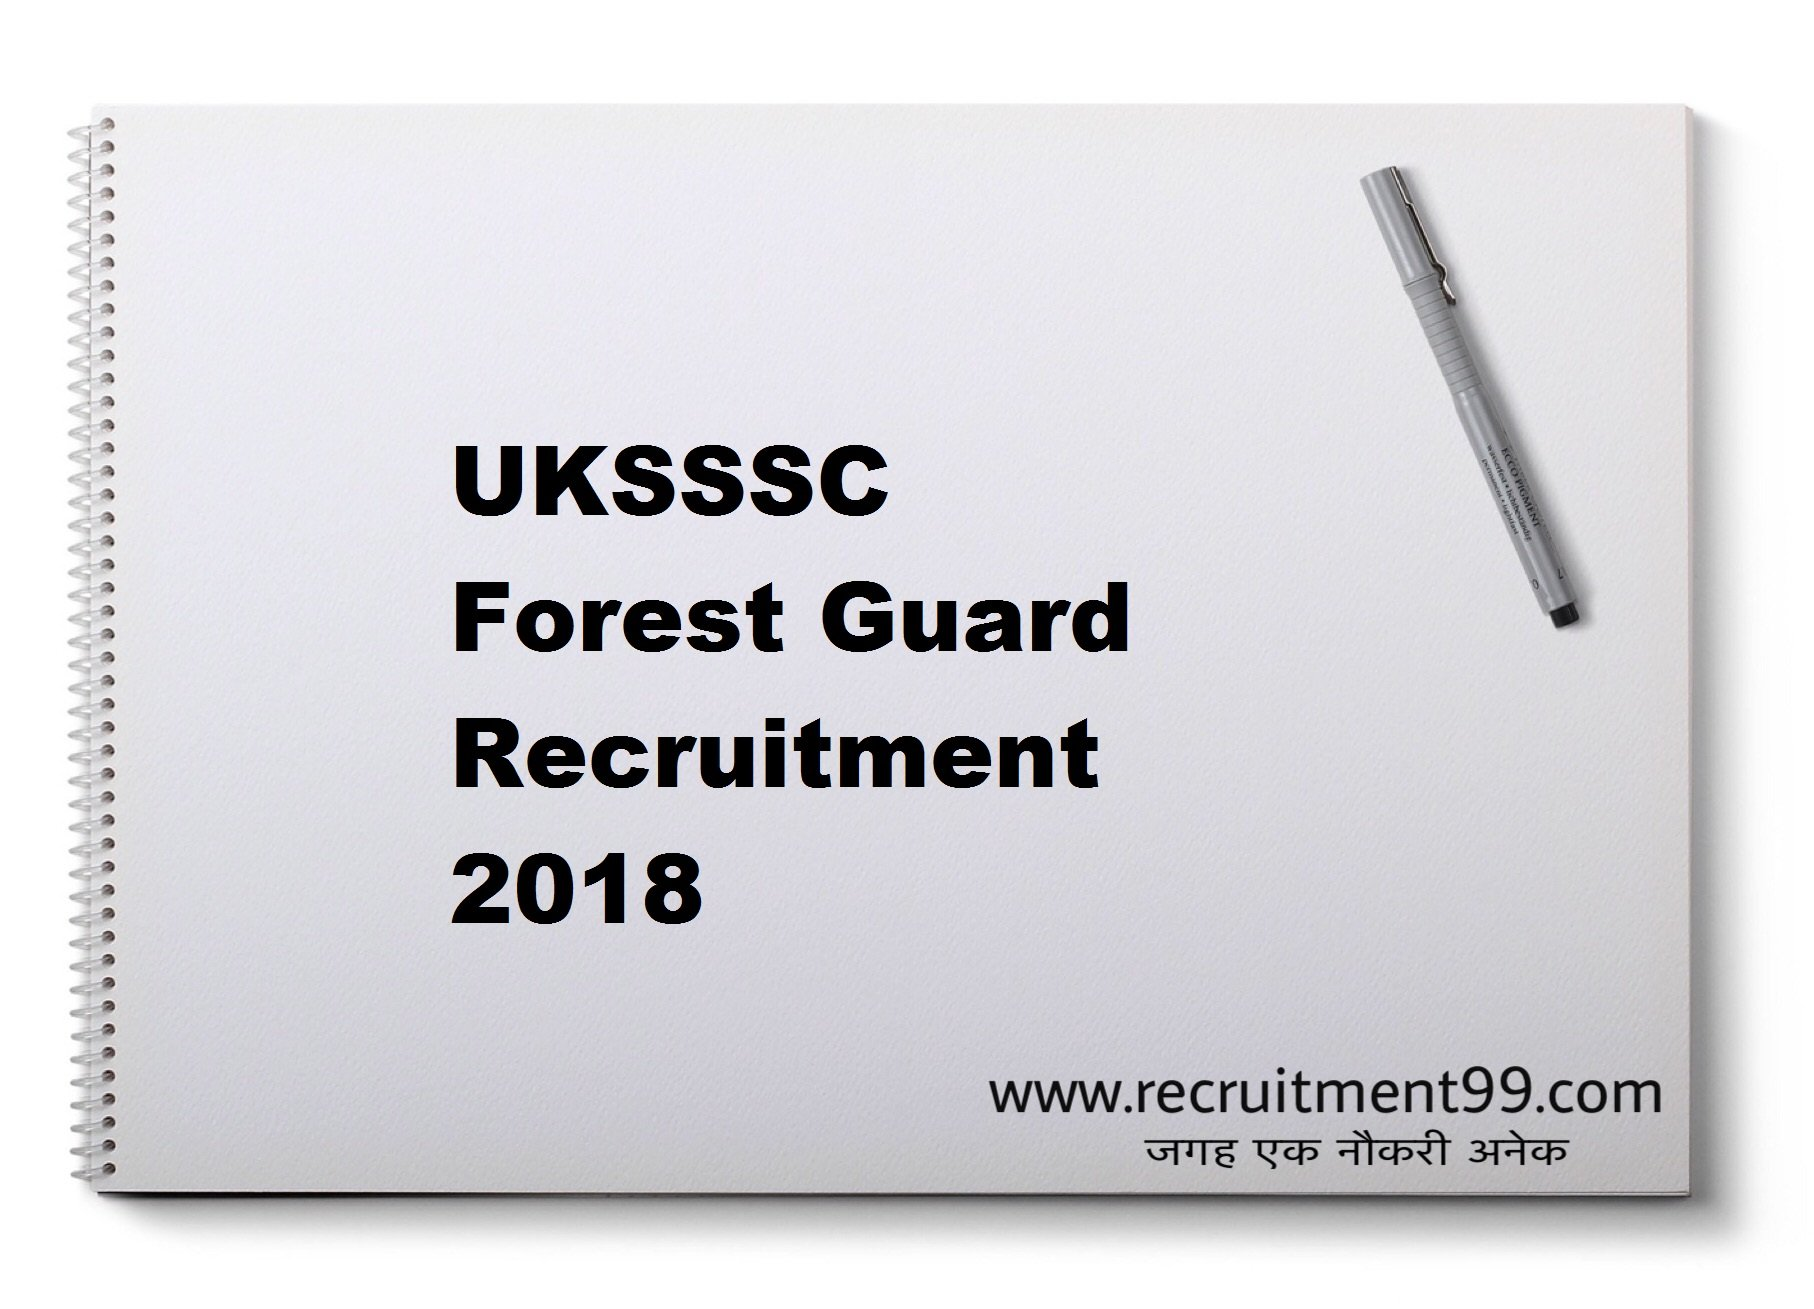 UKSSSC Forest Guard Recruitment Admit Card Result 2018